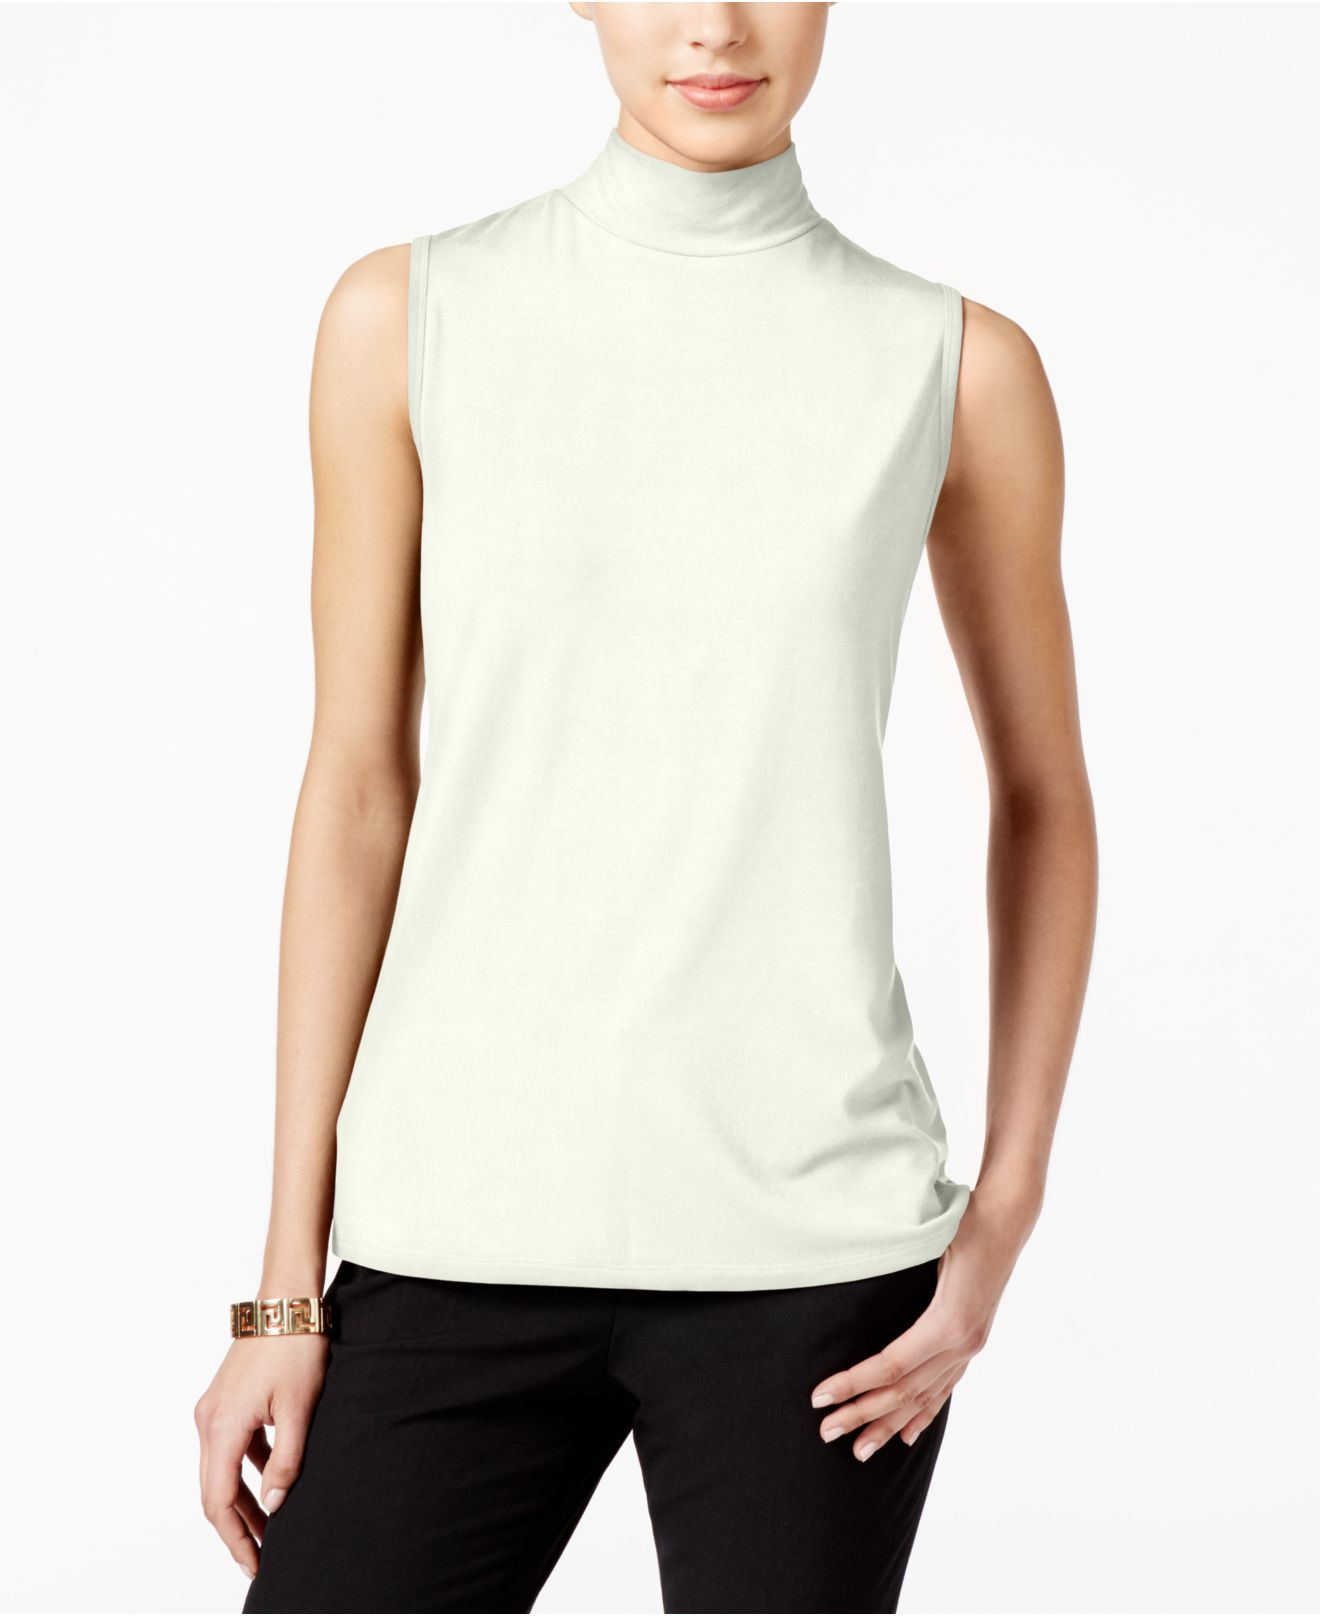 Lyst charter club sleeveless mock turtleneck top for Sleeveless mock turtleneck shirts